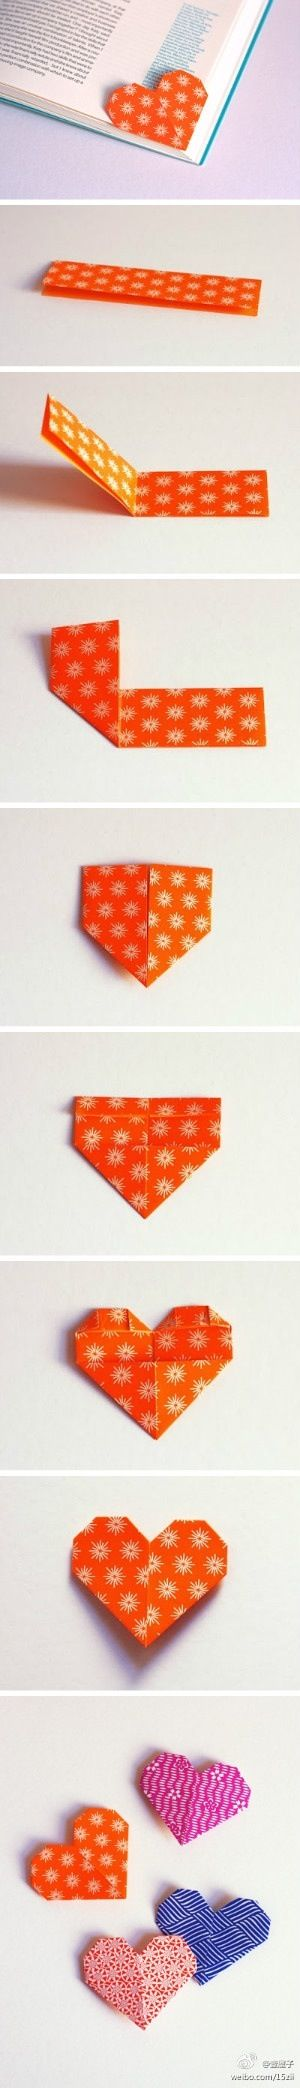 Heart origami page markers